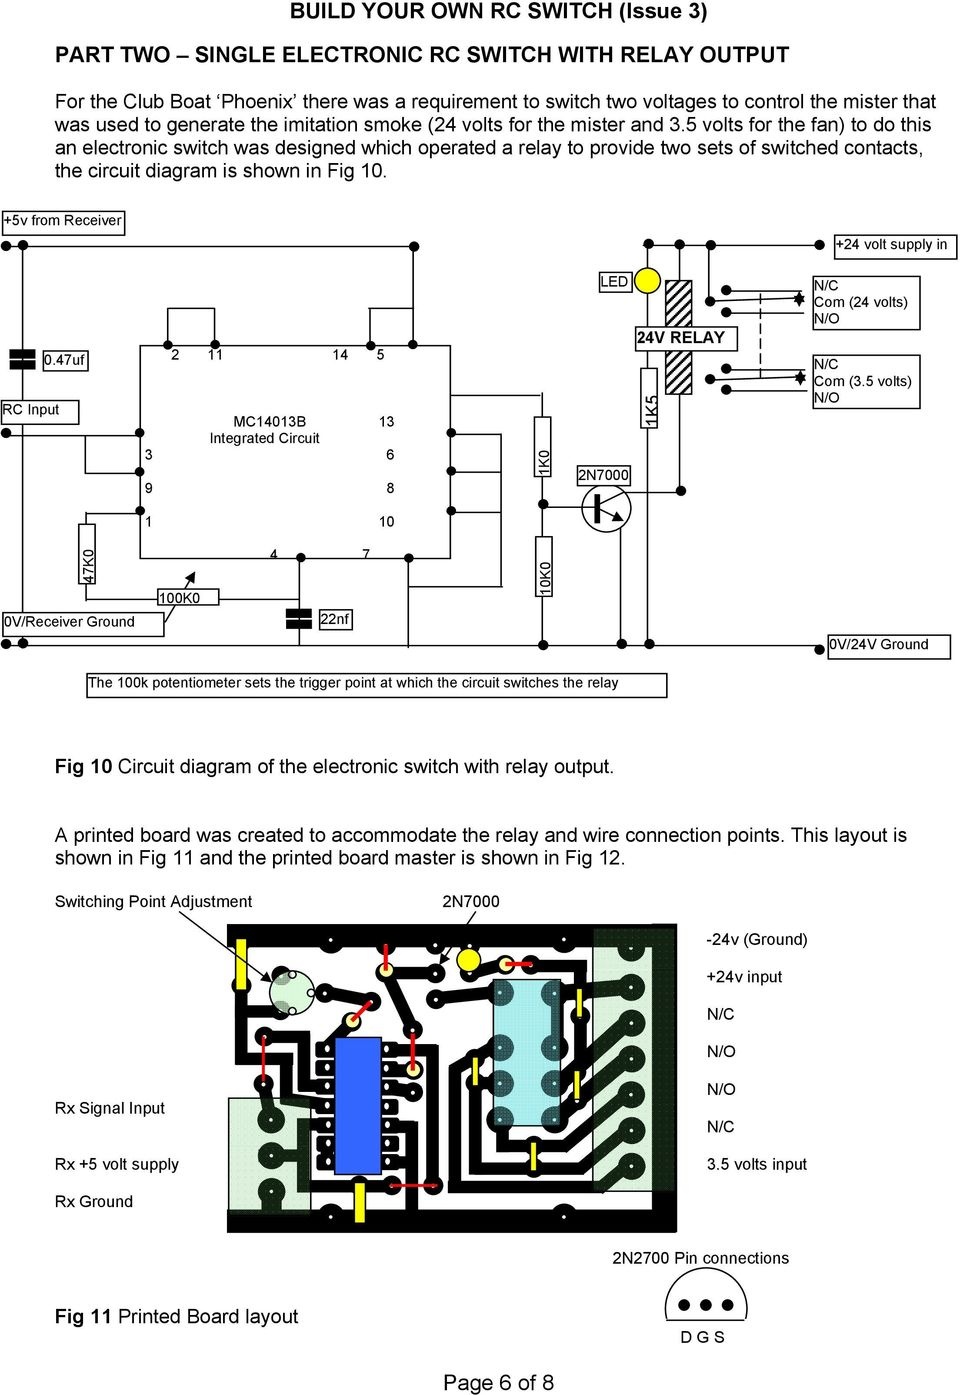 Build Your Own Rc Switch Issue 3 Pdf Make This Electronic Mosquito Repeller Circuit Diagram 5v From Receiver 24 Volt Supply In Input 047uf 2 11 14